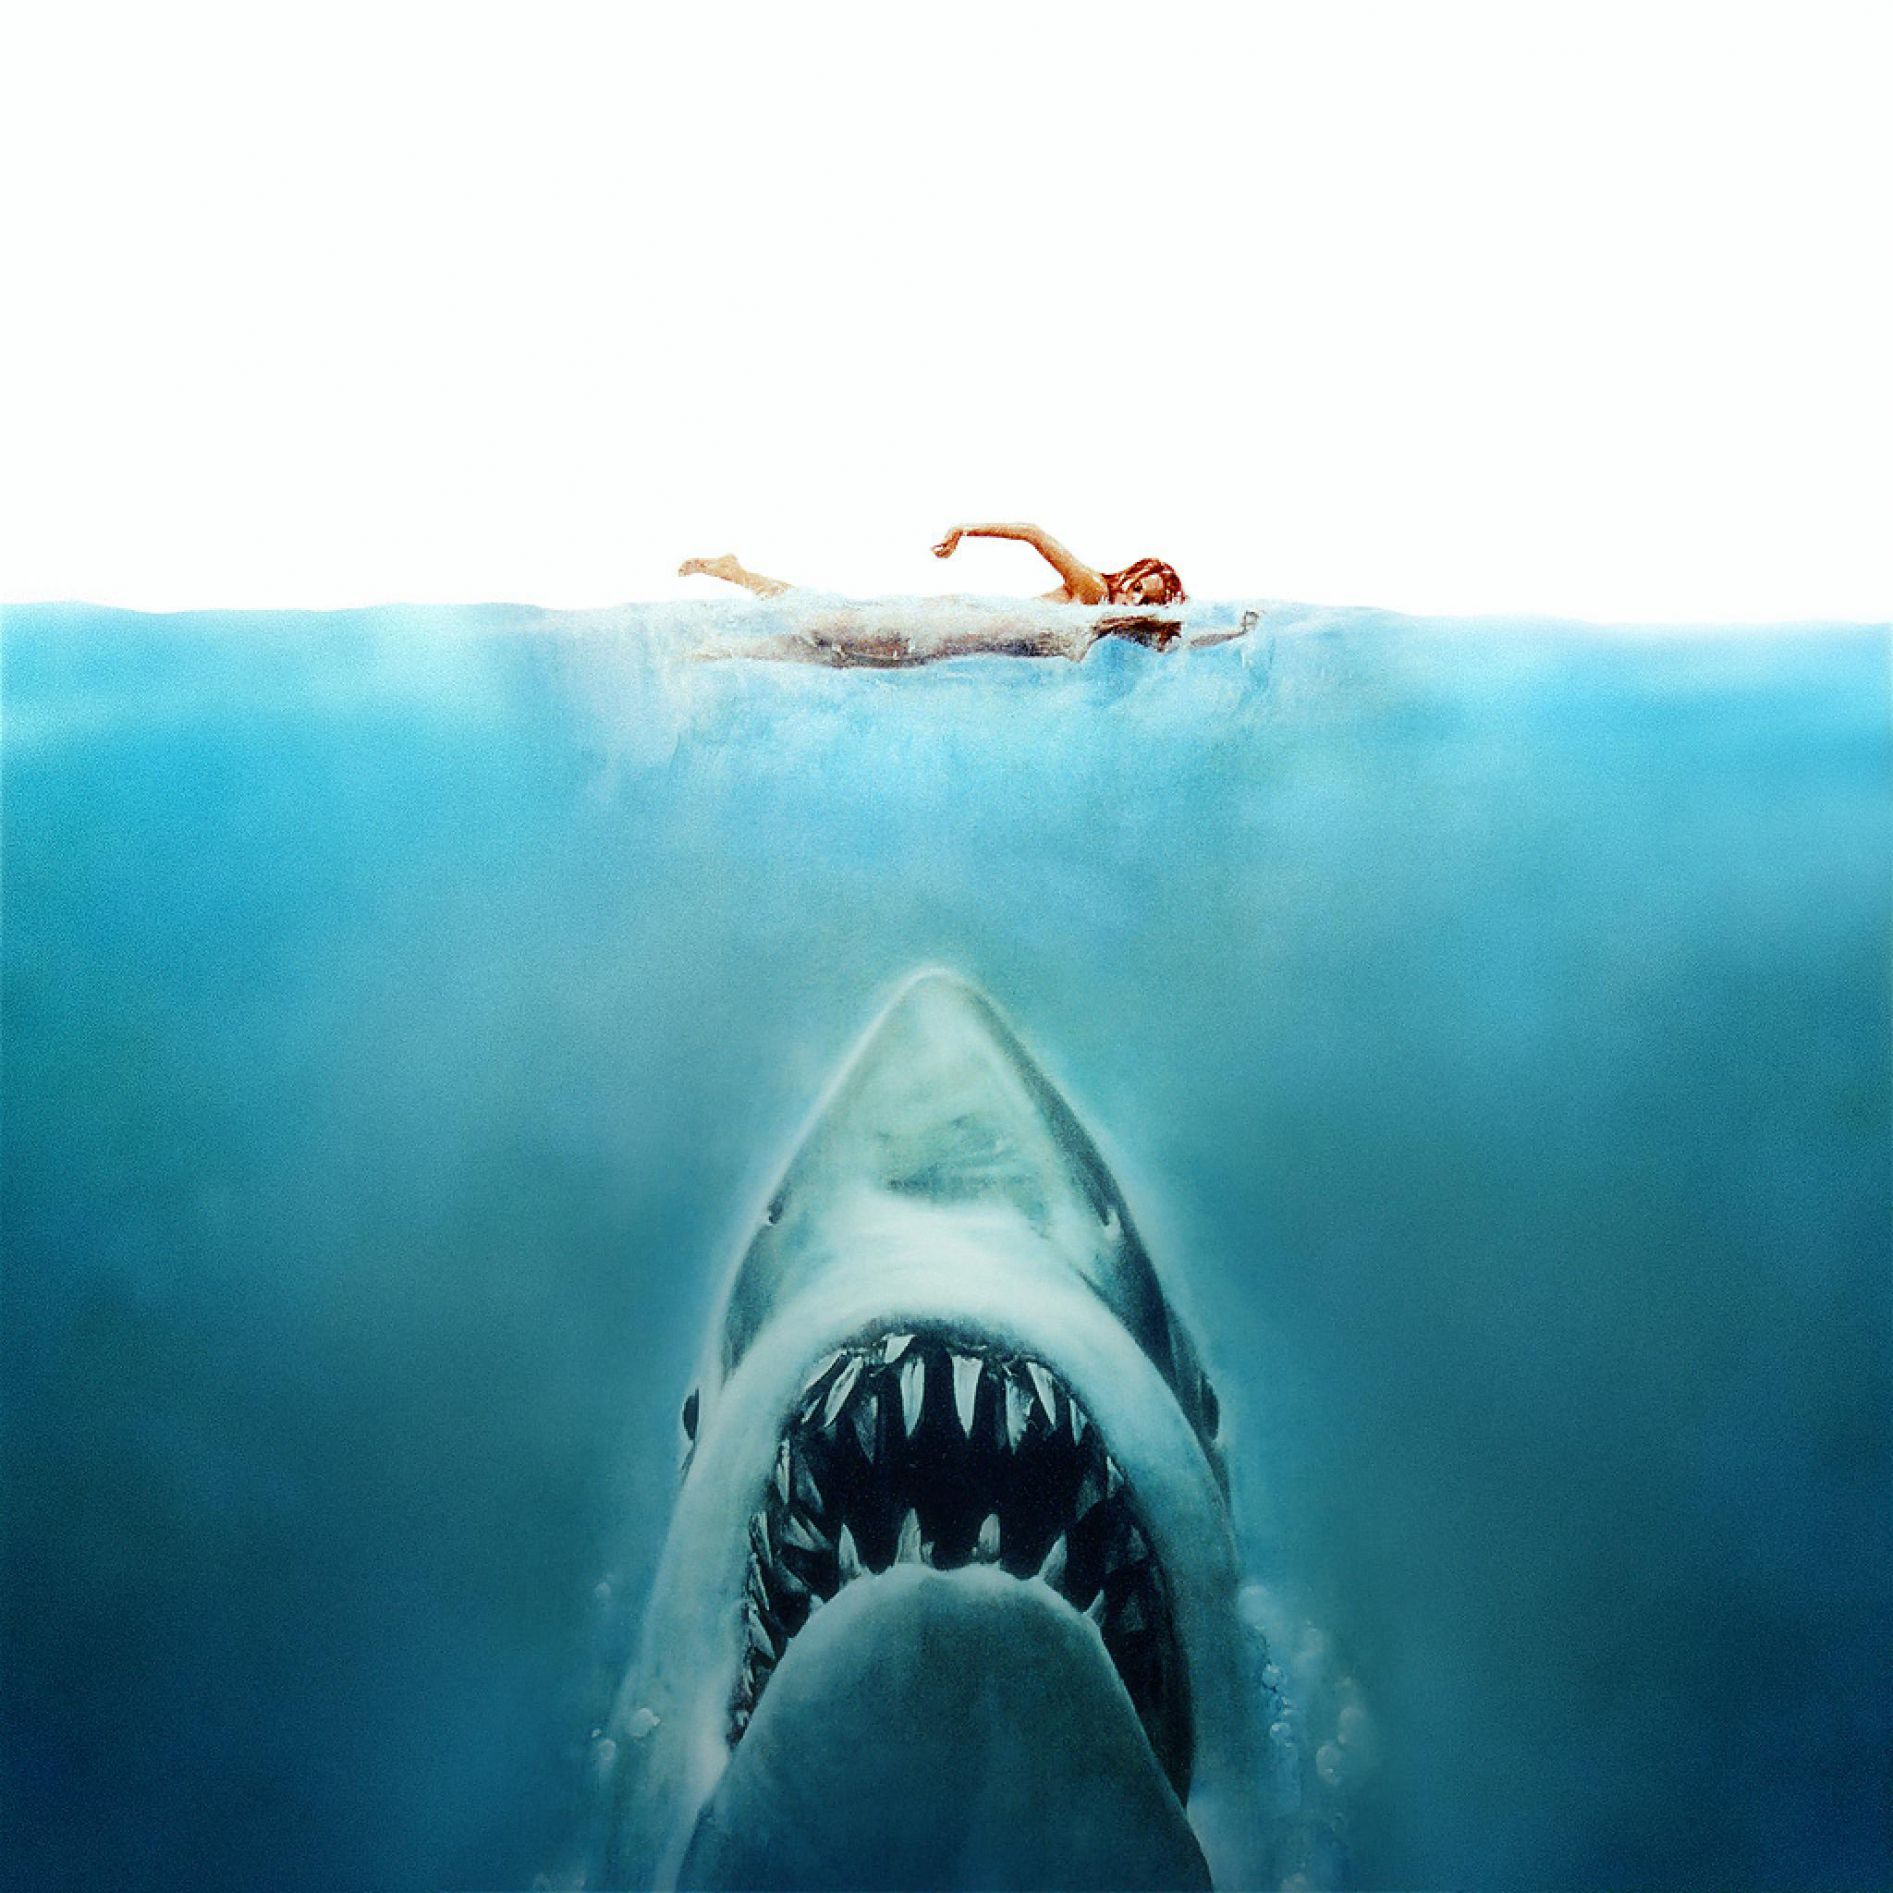 Jaws_Poster Blank Meme Template